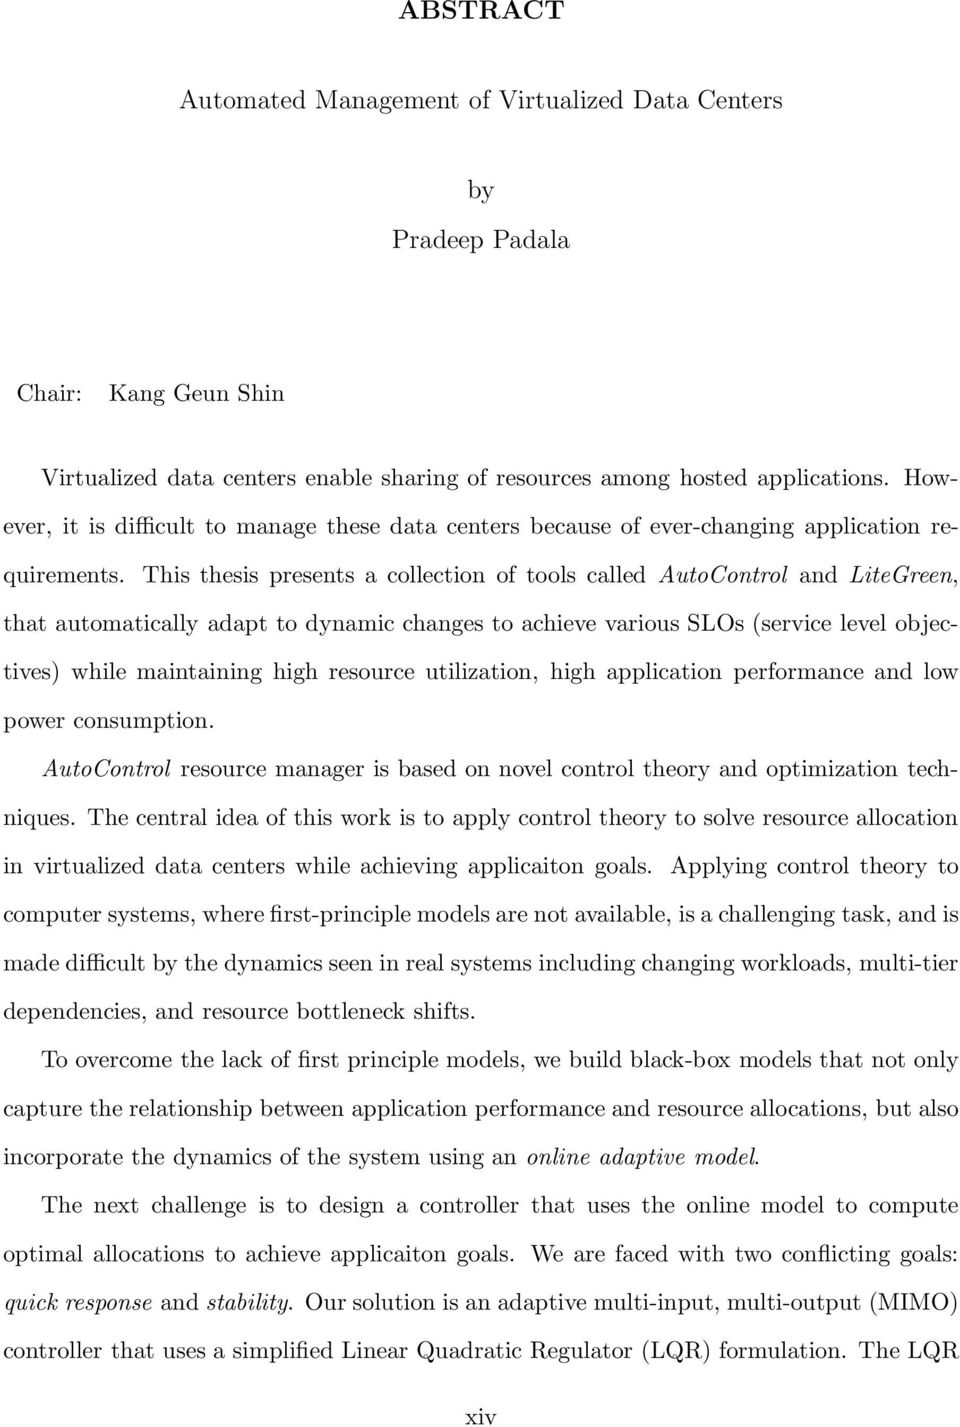 This thesis presents a collection of tools called AutoControl and LiteGreen, that automatically adapt to dynamic changes to achieve various SLOs (service level objectives) while maintaining high